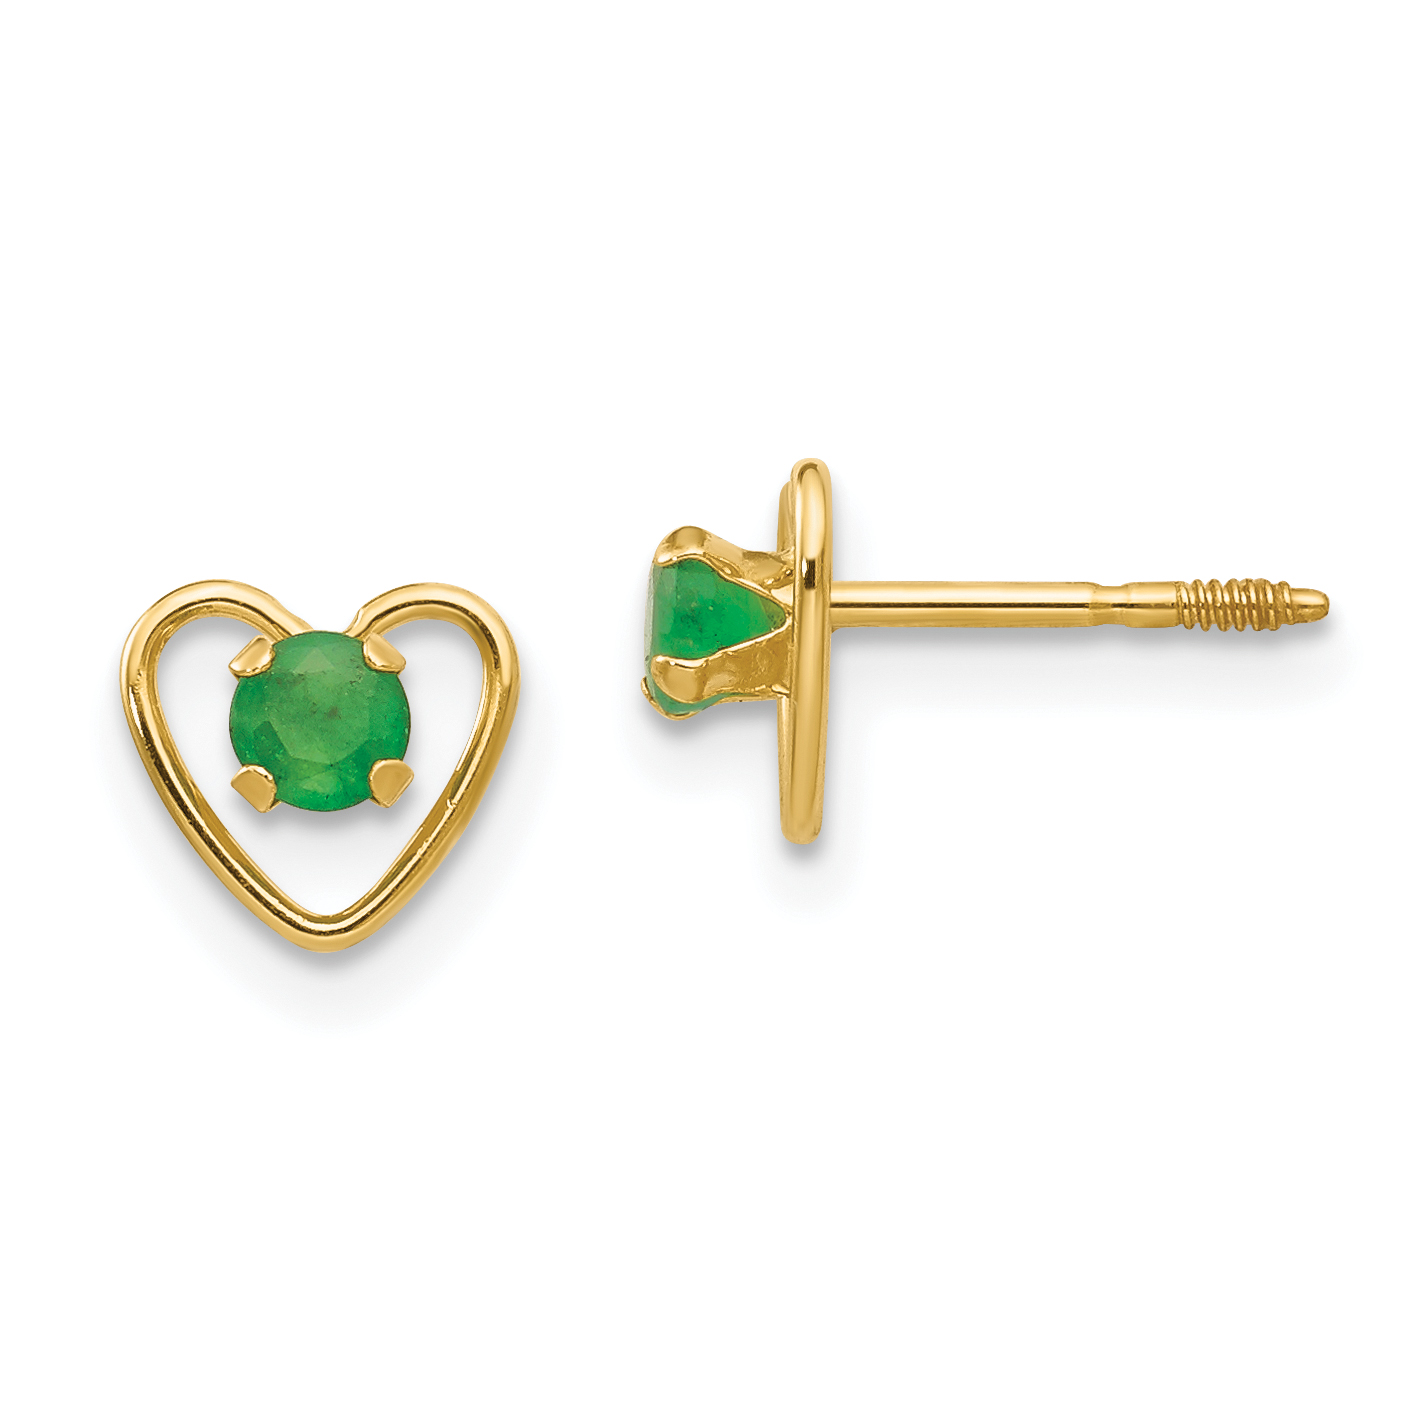 14k Yellow Gold 3mm Green Emerald Birthstone Heart Earrings May Love Fine Jewelry Gifts For Women For Her - image 3 of 3